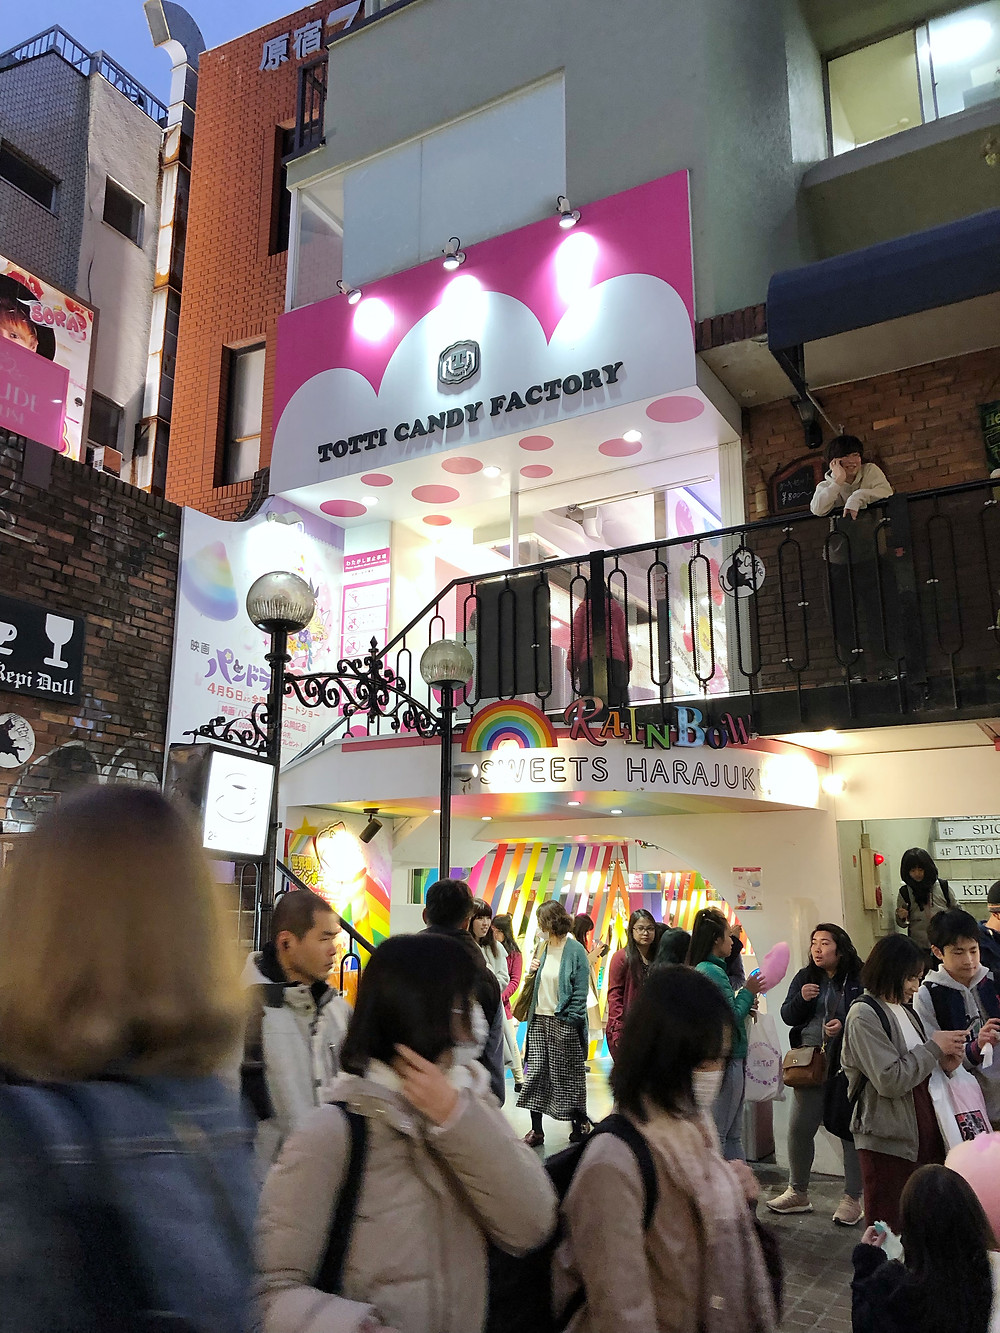 Totti Candy Factory harajuku Cookingwiththehamster